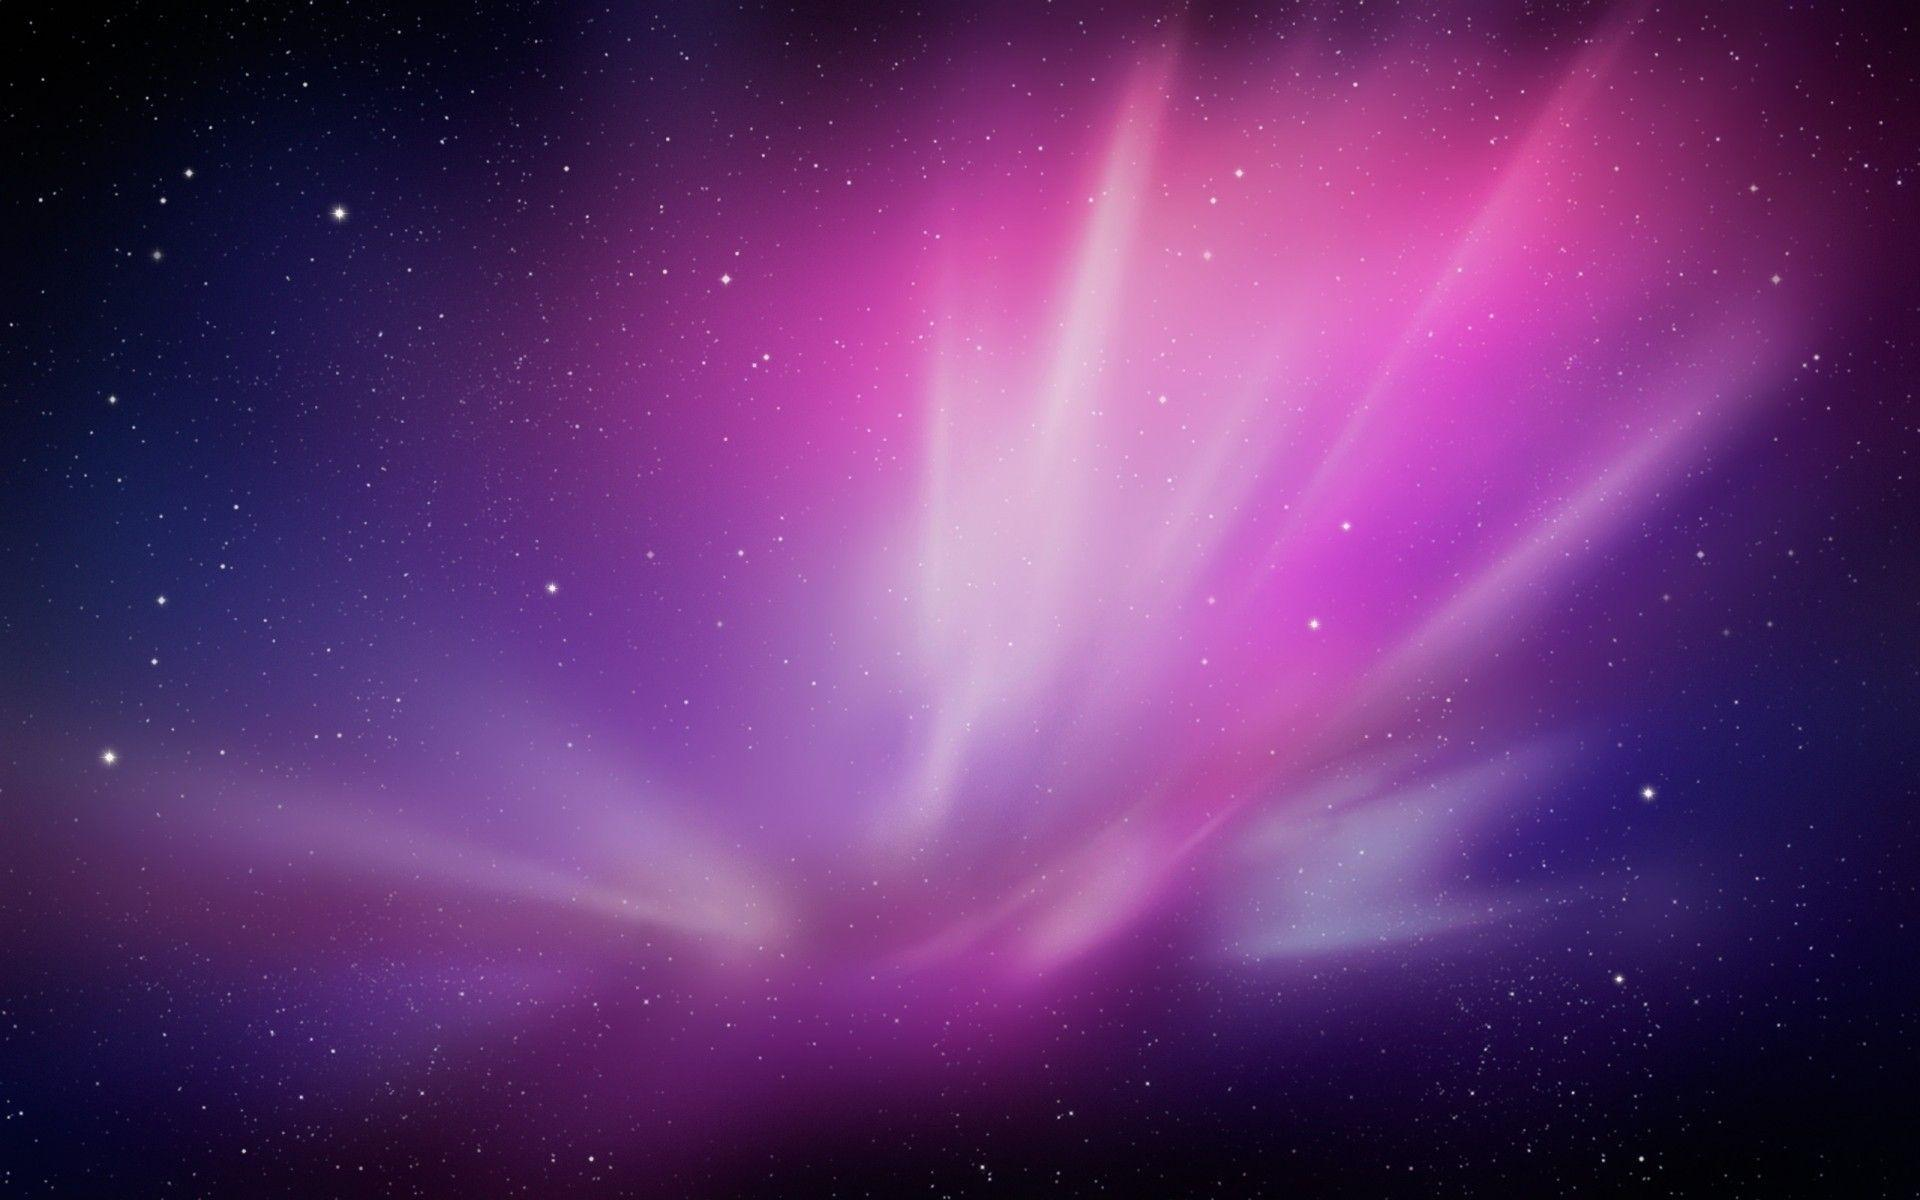 imac wallpapers